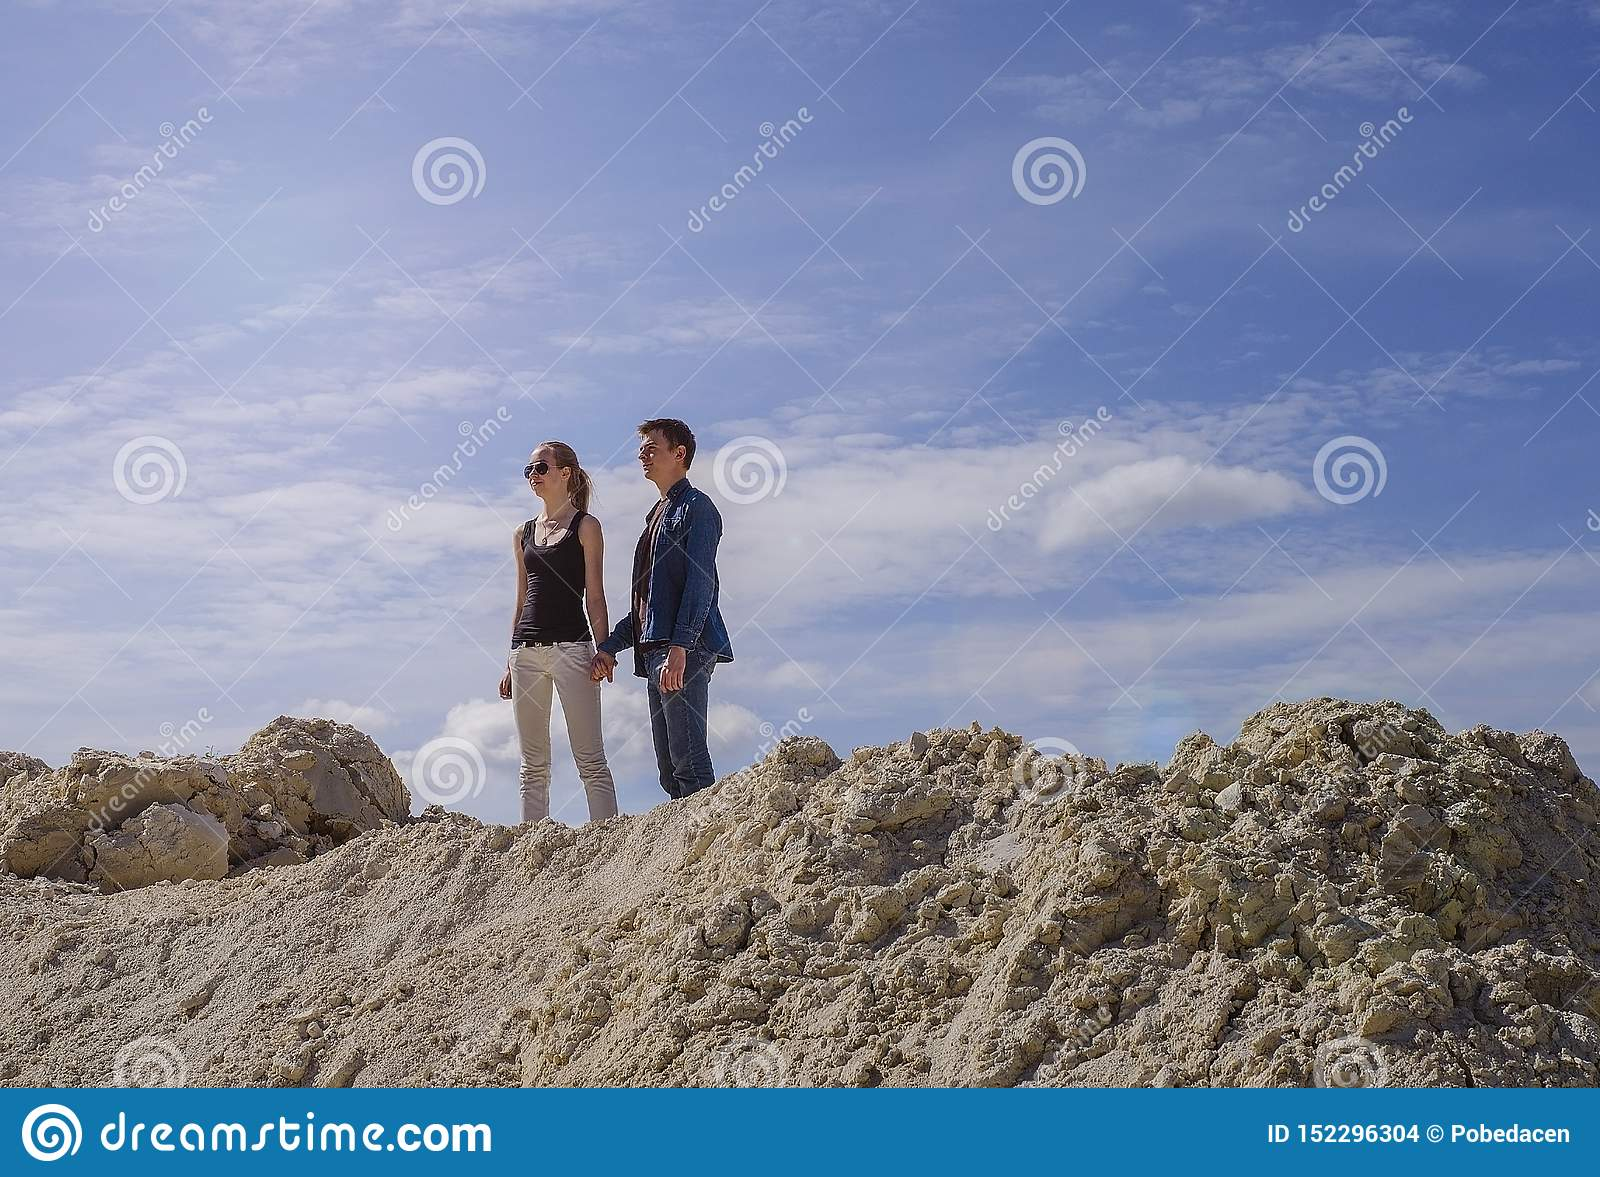 The guy with the girl against the blue sky at the top of the mountain